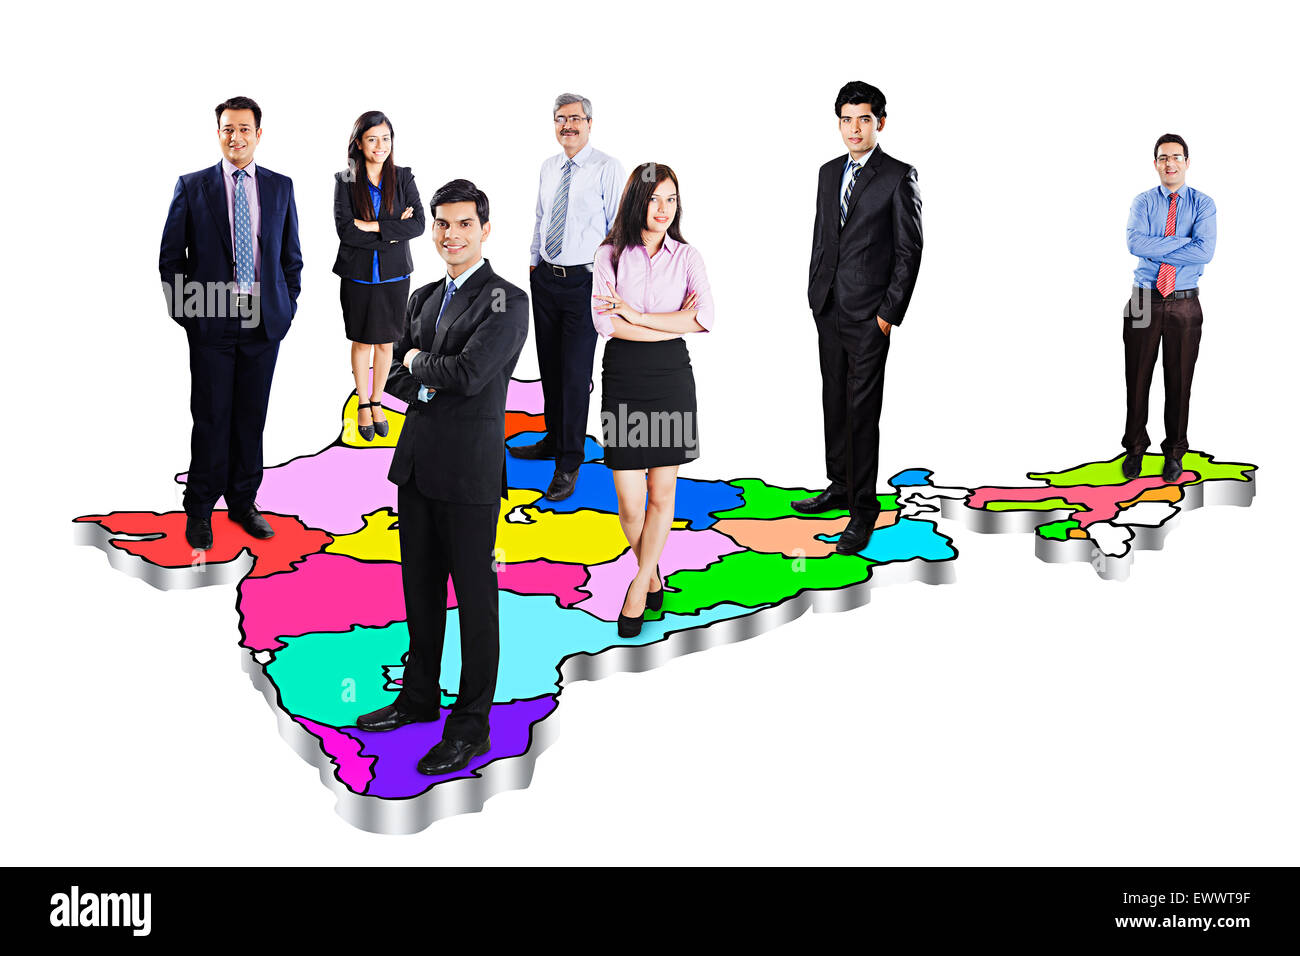 indian Business Group Colleague Partners - Stock Image